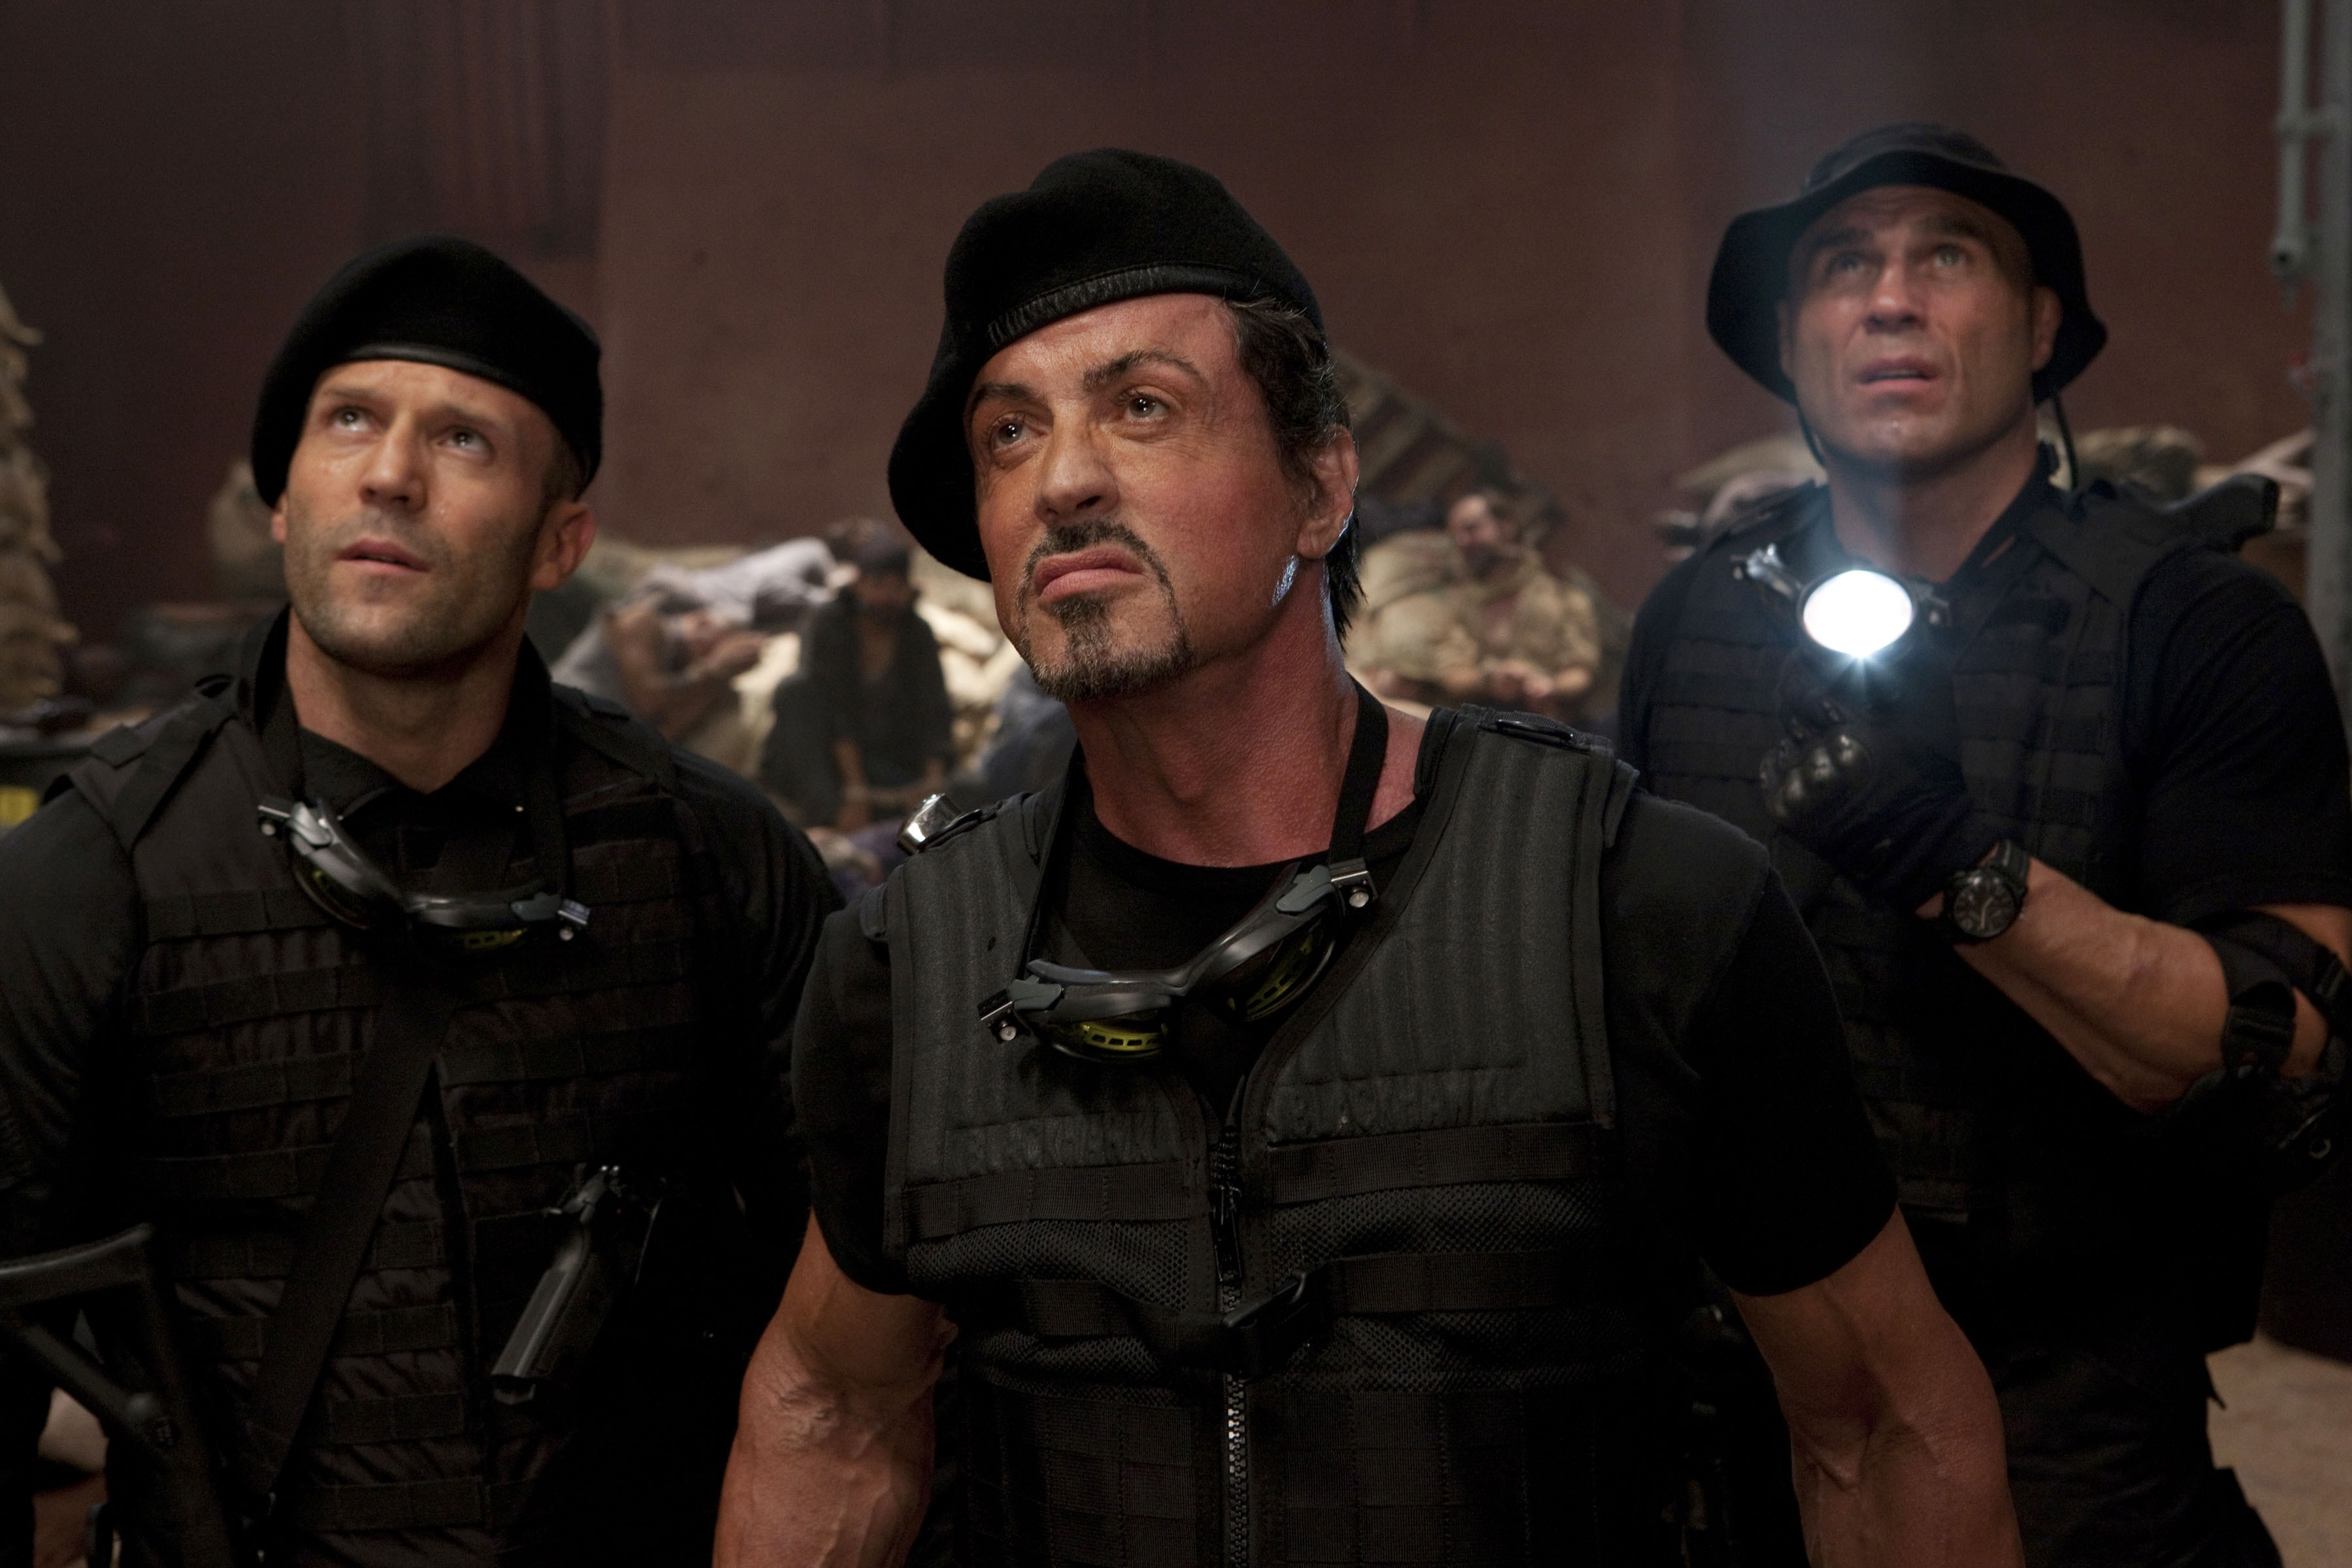 Jason Statham, Sylvester Stallone, Randy Couture, The Expendables